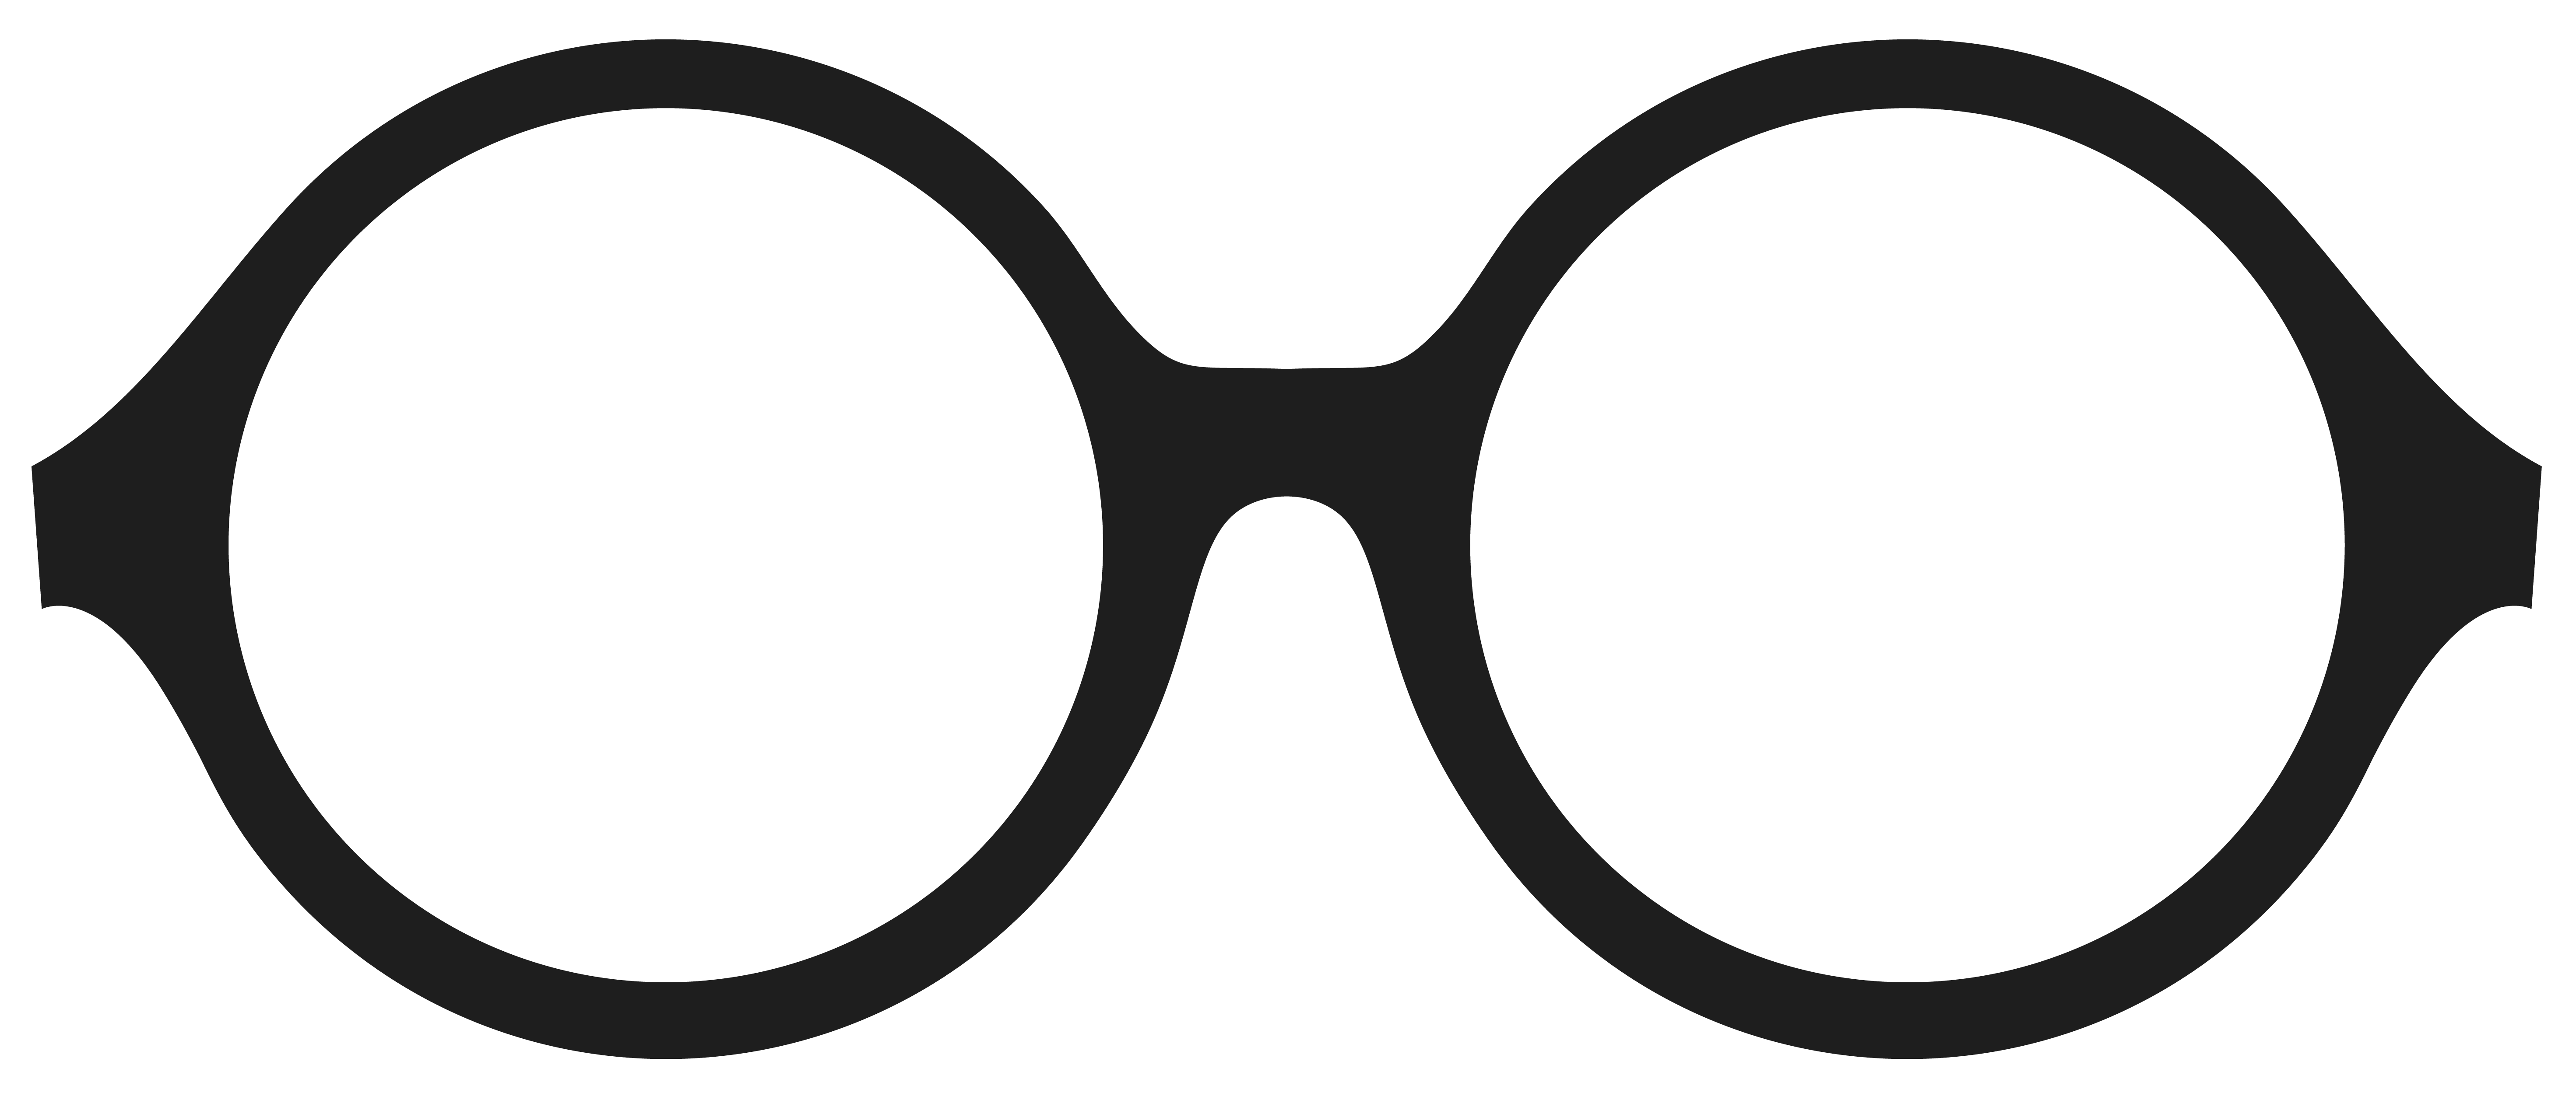 png royalty free Glasses png images free. 80 clipart shades